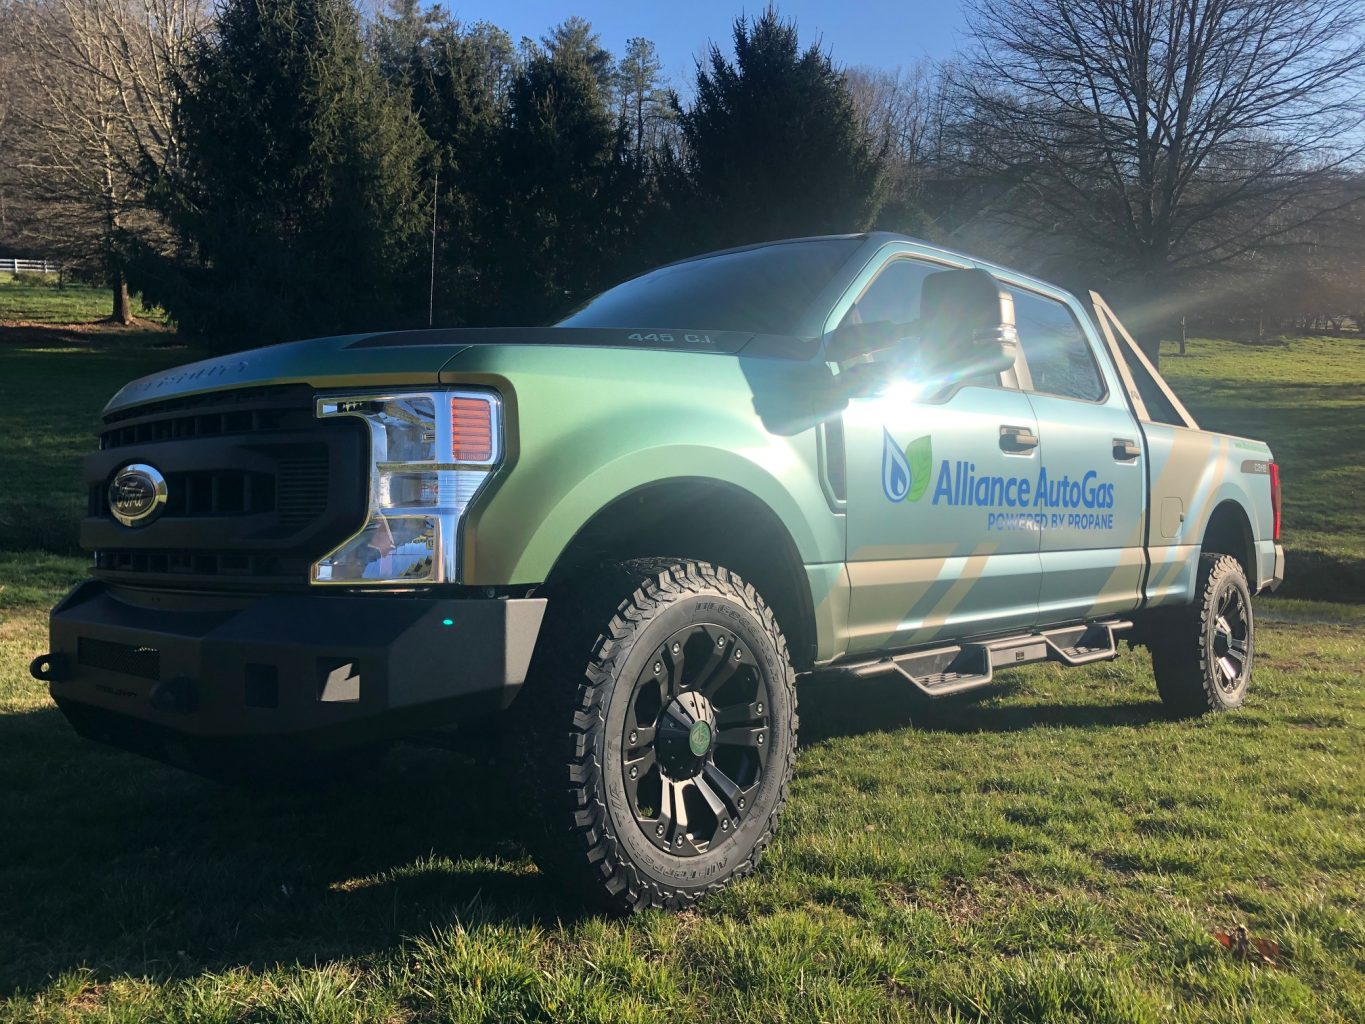 Alliance AutoGas wrapped Ford F250 Truck with 7.3L V8, 430 horsepower, 475 torque. Now running on clean-burning autogas.